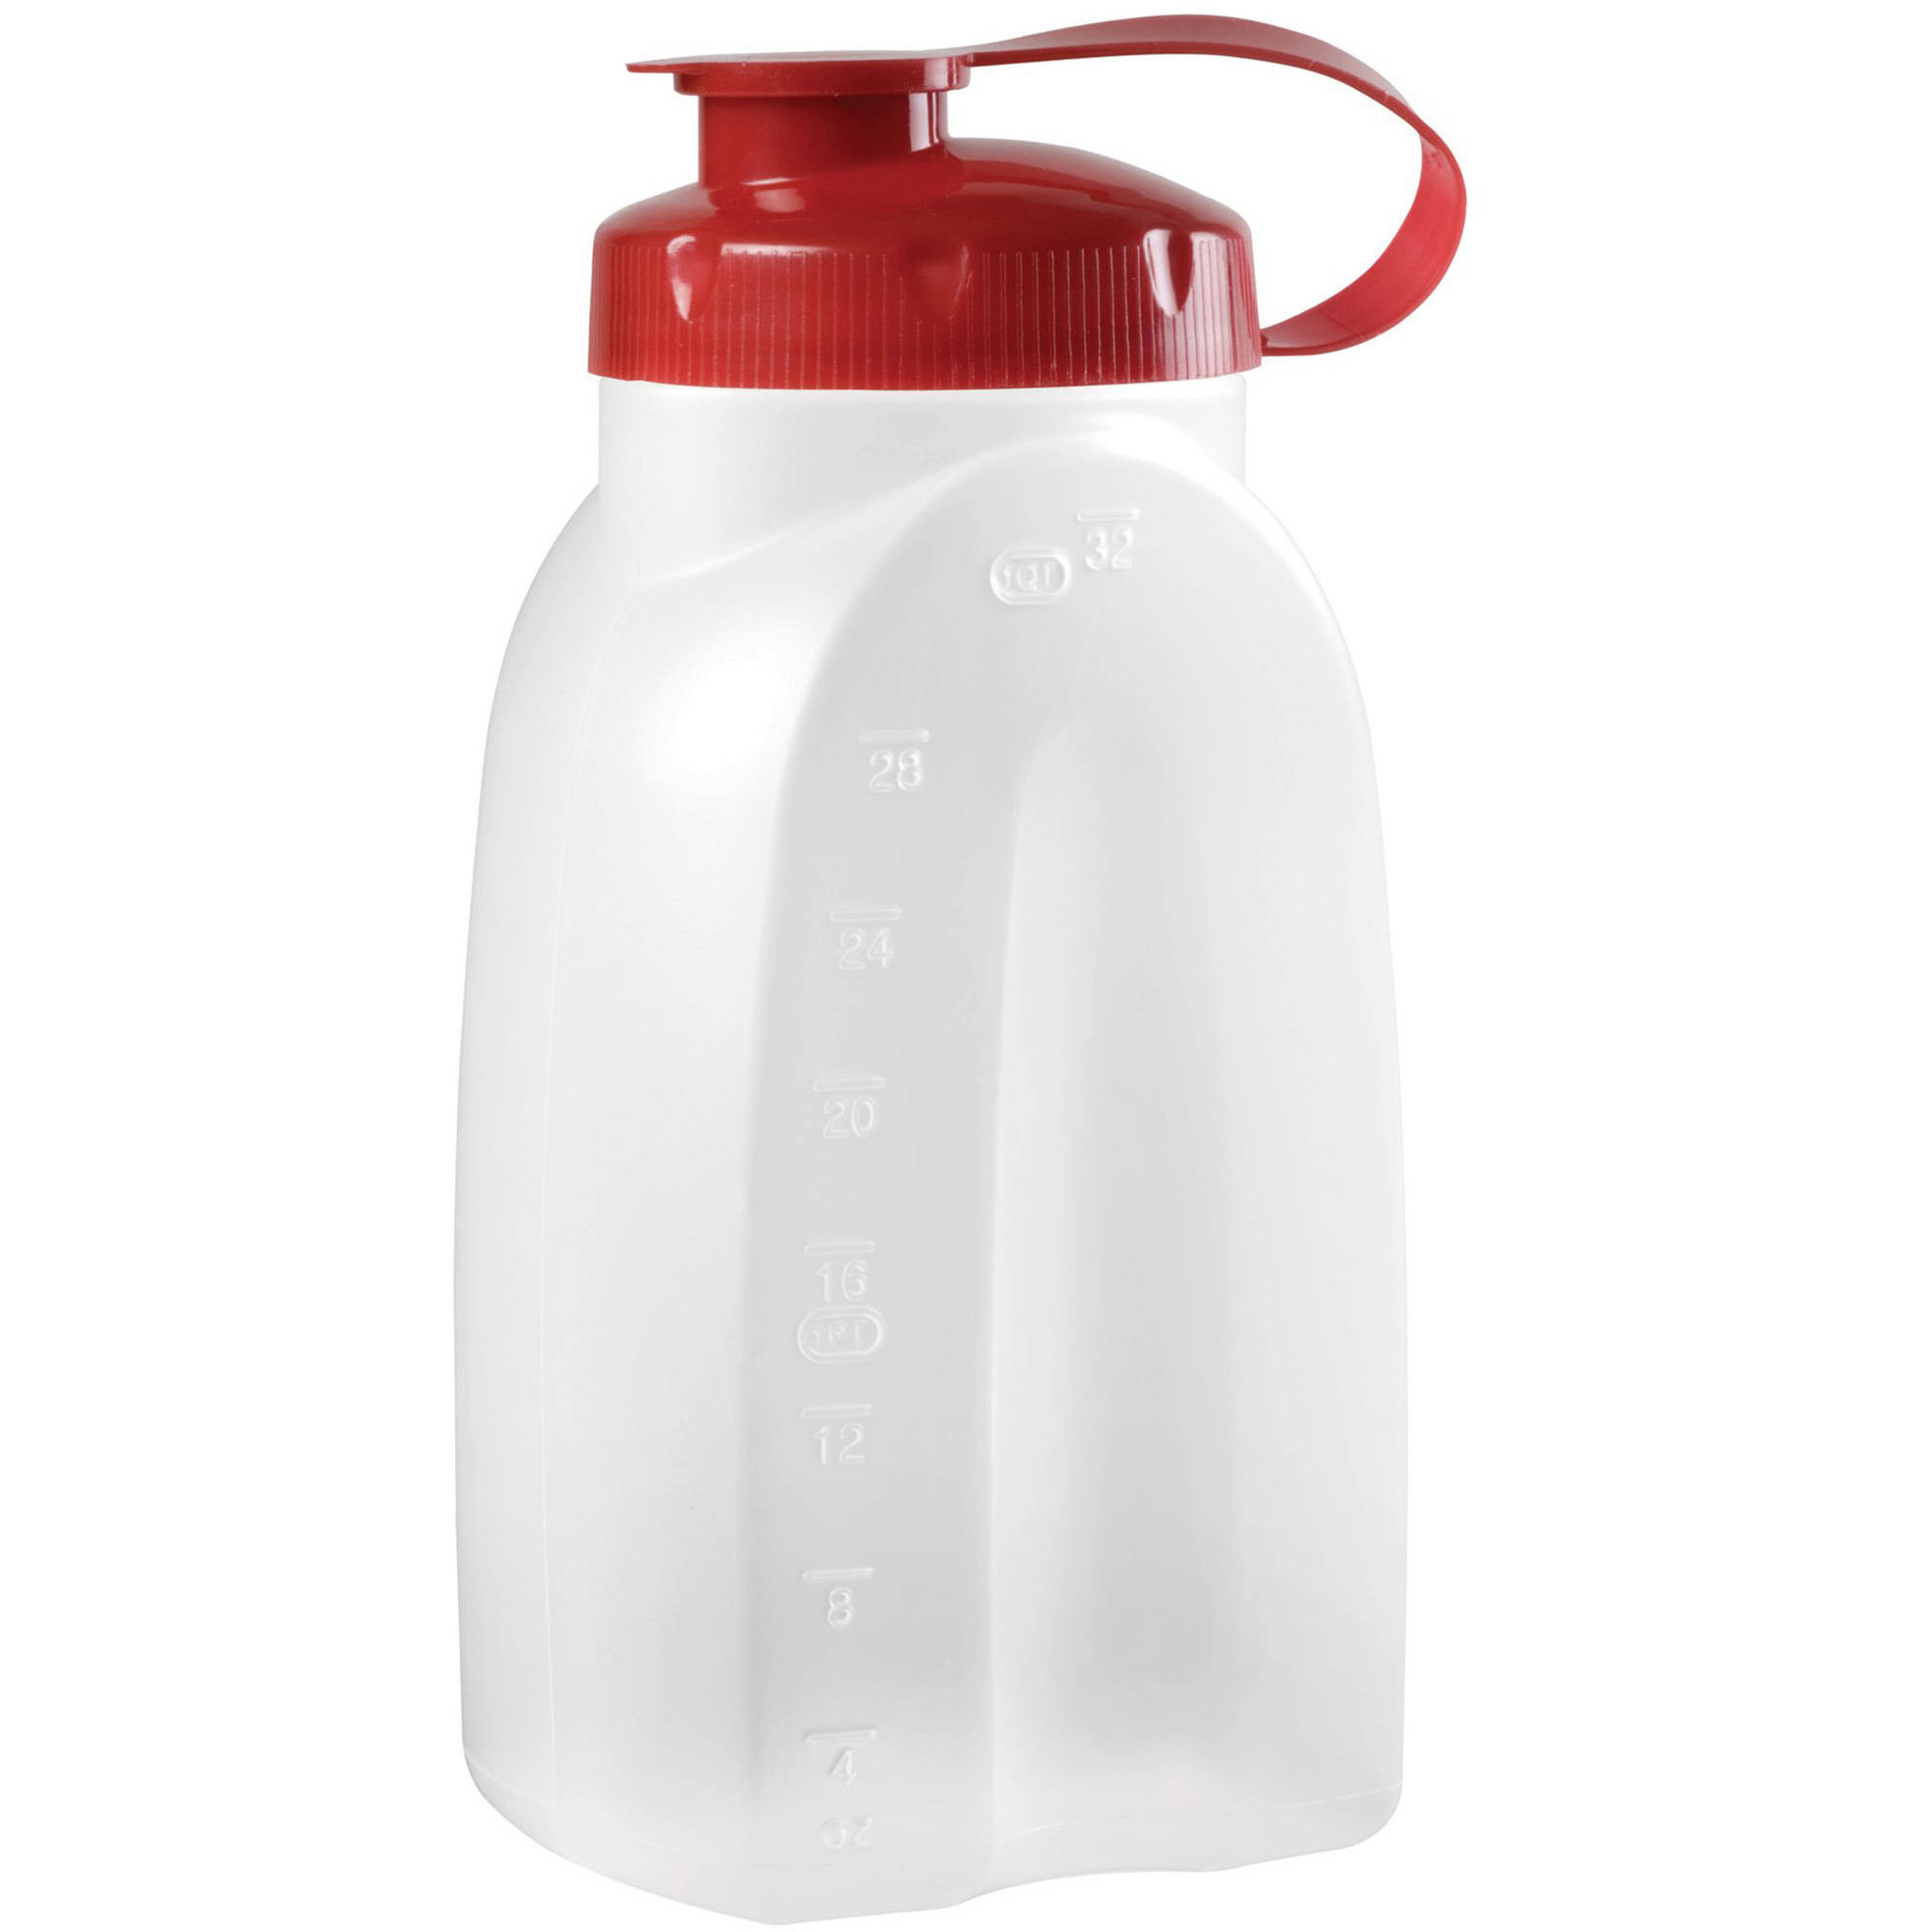 Rubbermaid Serving Saver Pitcher